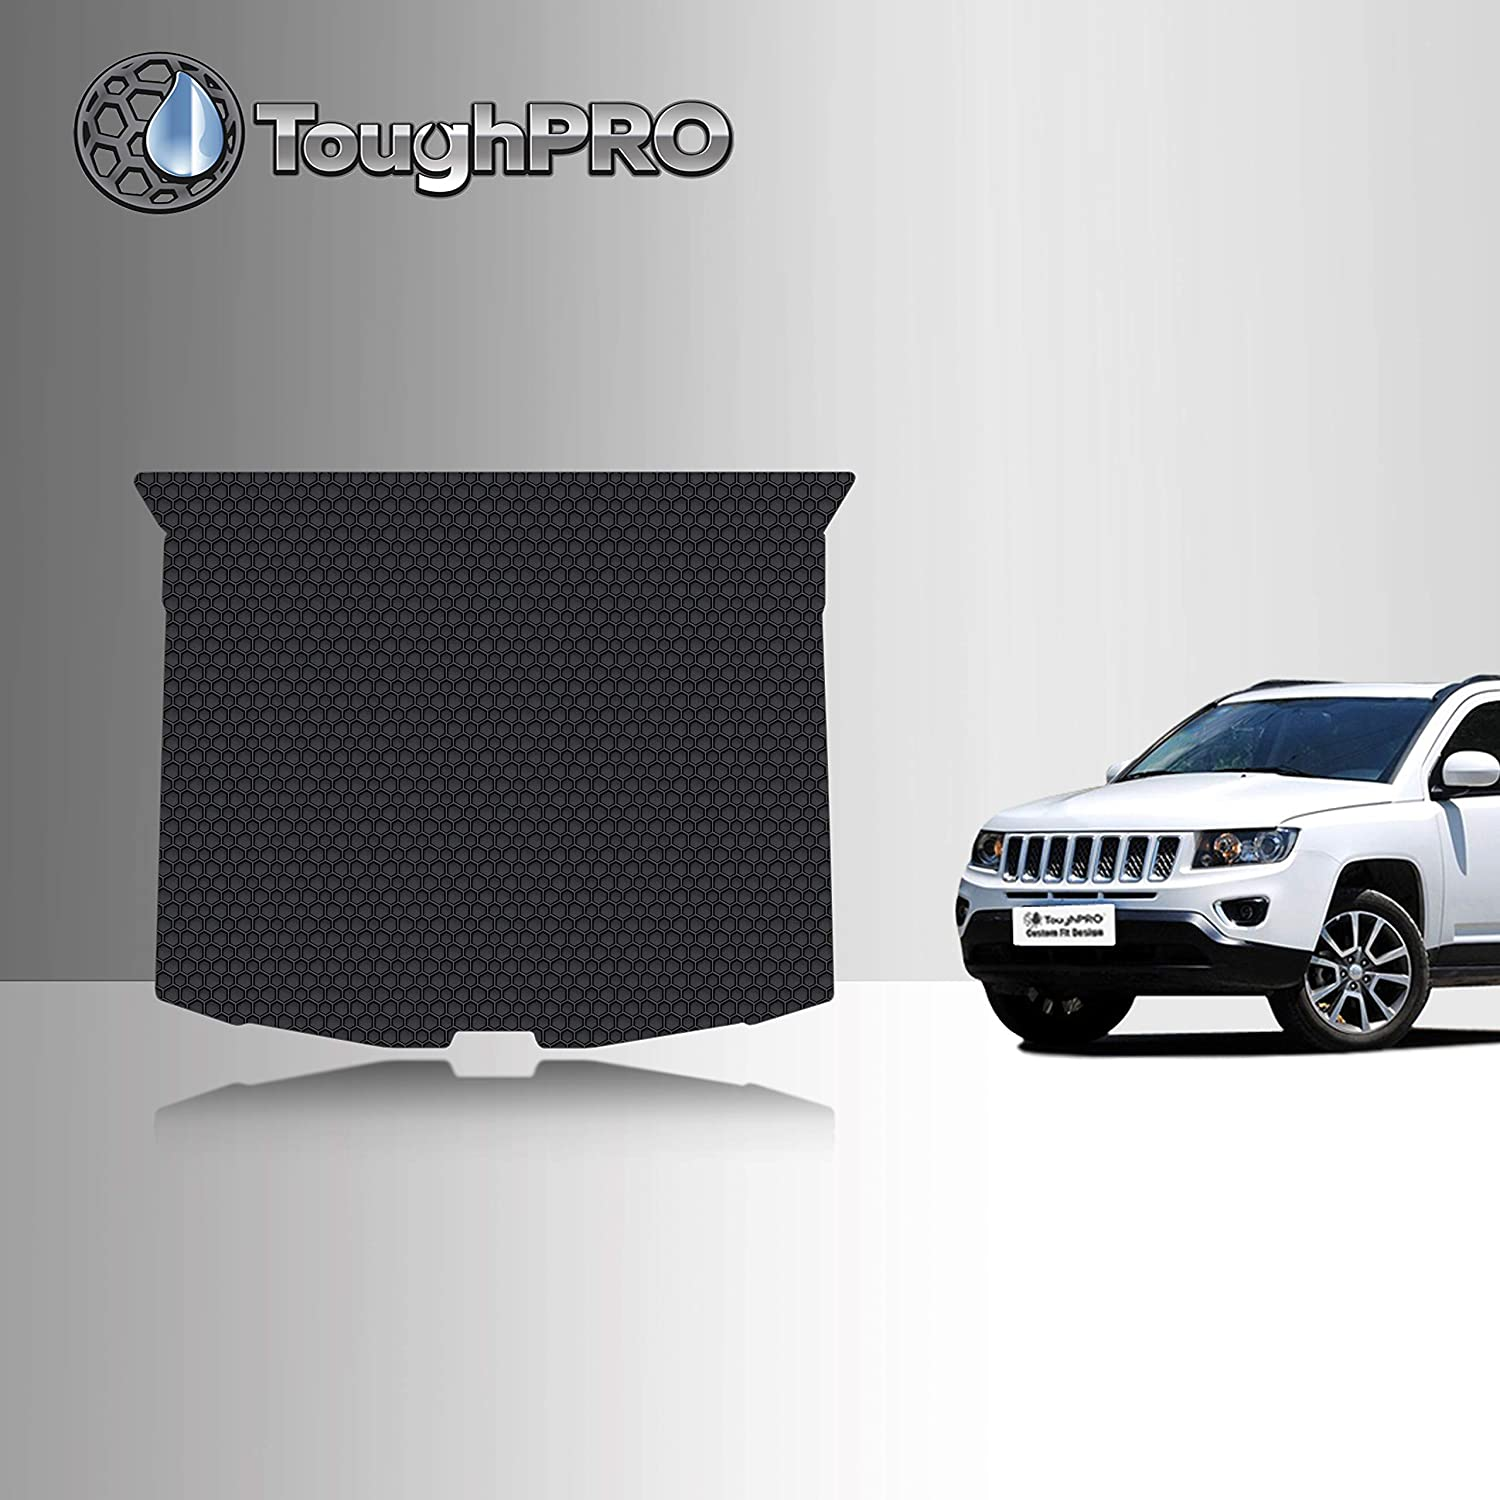 TOUGHPRO Cargo/Trunk Mat Accessories Compatible with Jeep Compass - All Weather - Heavy Duty - (Made in USA) - Black Rubber - 2017, 2018, 2019, 2020, 2021